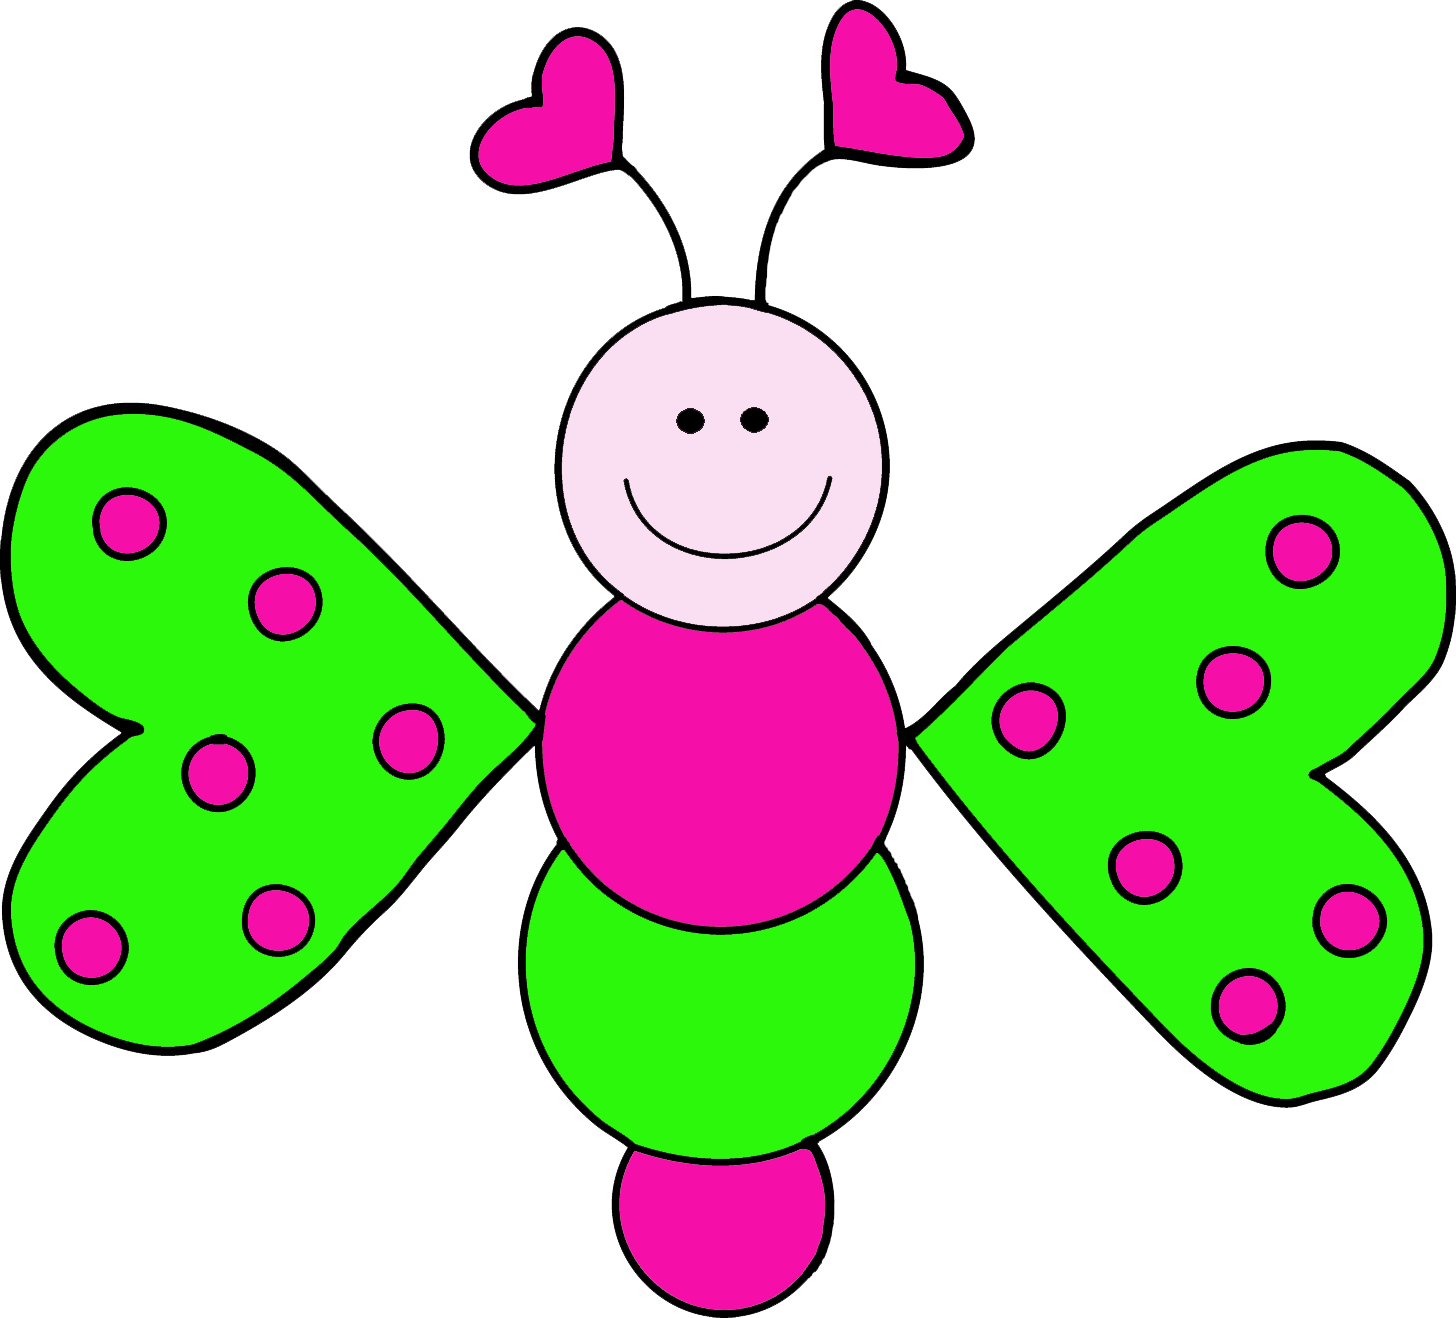 Butterfly clip art cute. Clipart panda free images